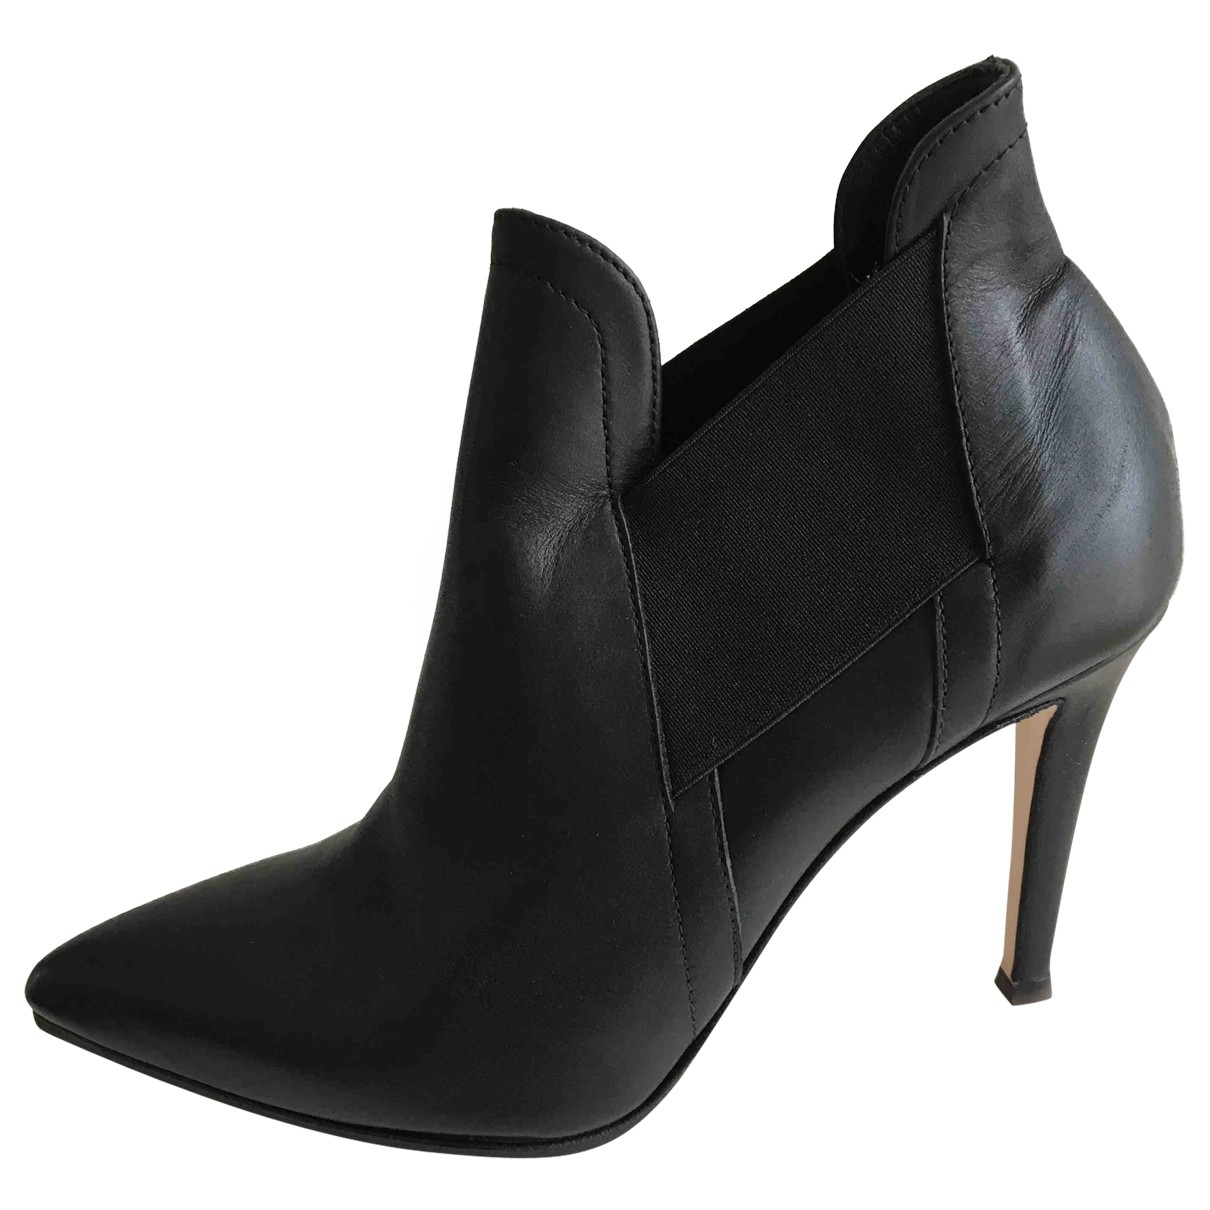 Orciani \N Black Leather Boots for Women 38 EU